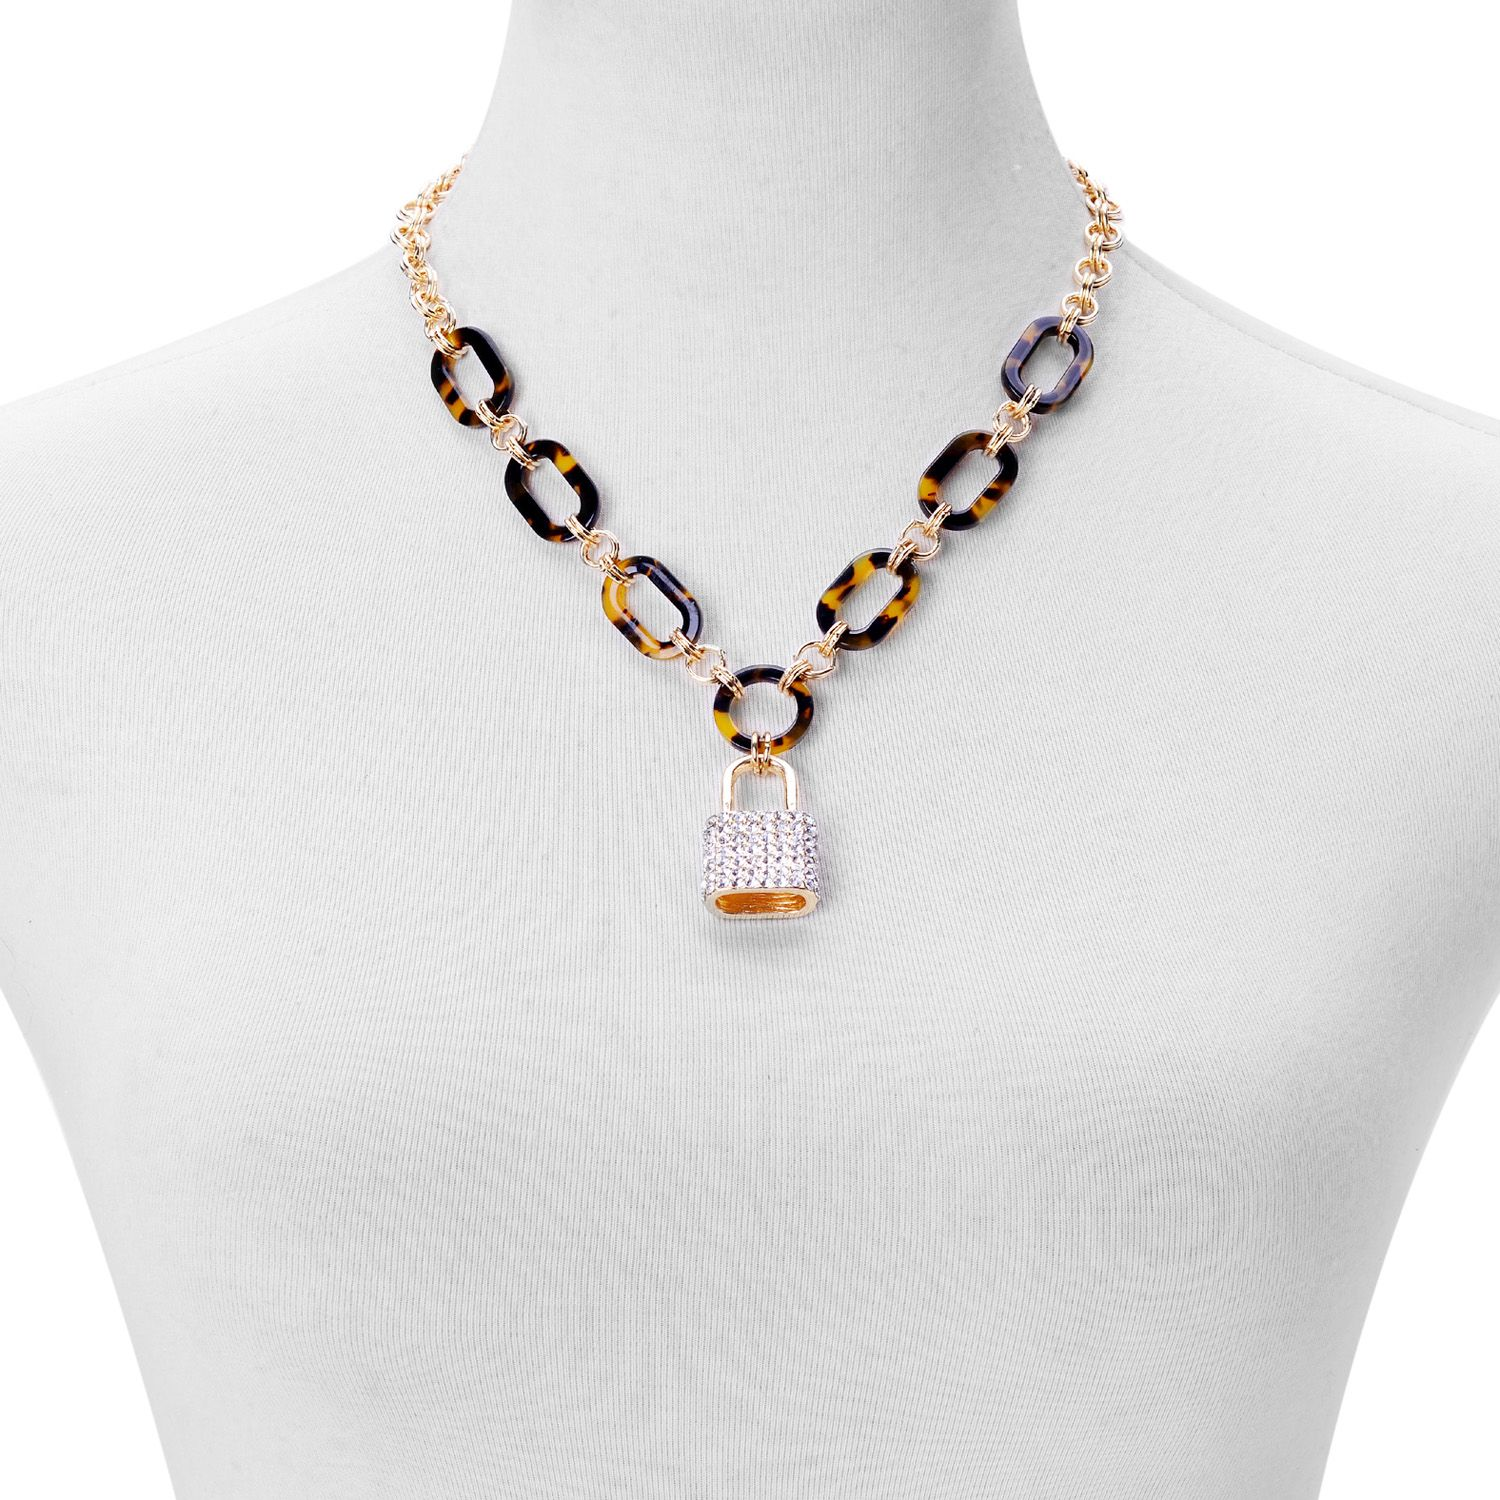 Austrian Crystal, Chroma Goldtone and ION Plated YG Stainless Steel Lock Necklace (18-23 in)